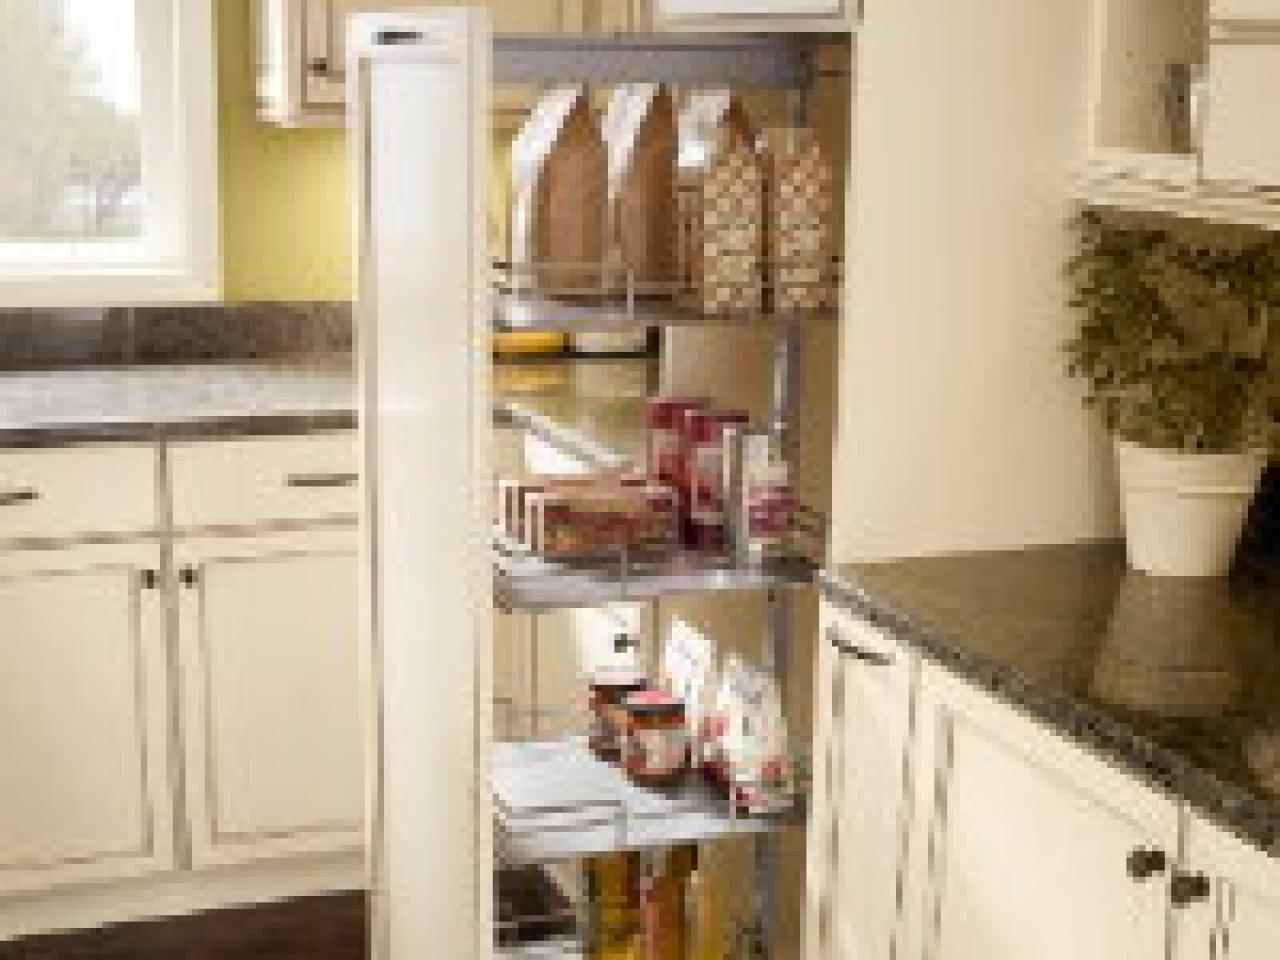 Kitchen cabinets kirkland - Kirkland Contracting Llc 404 376 6797 Kitchen Cabinet Upgrades